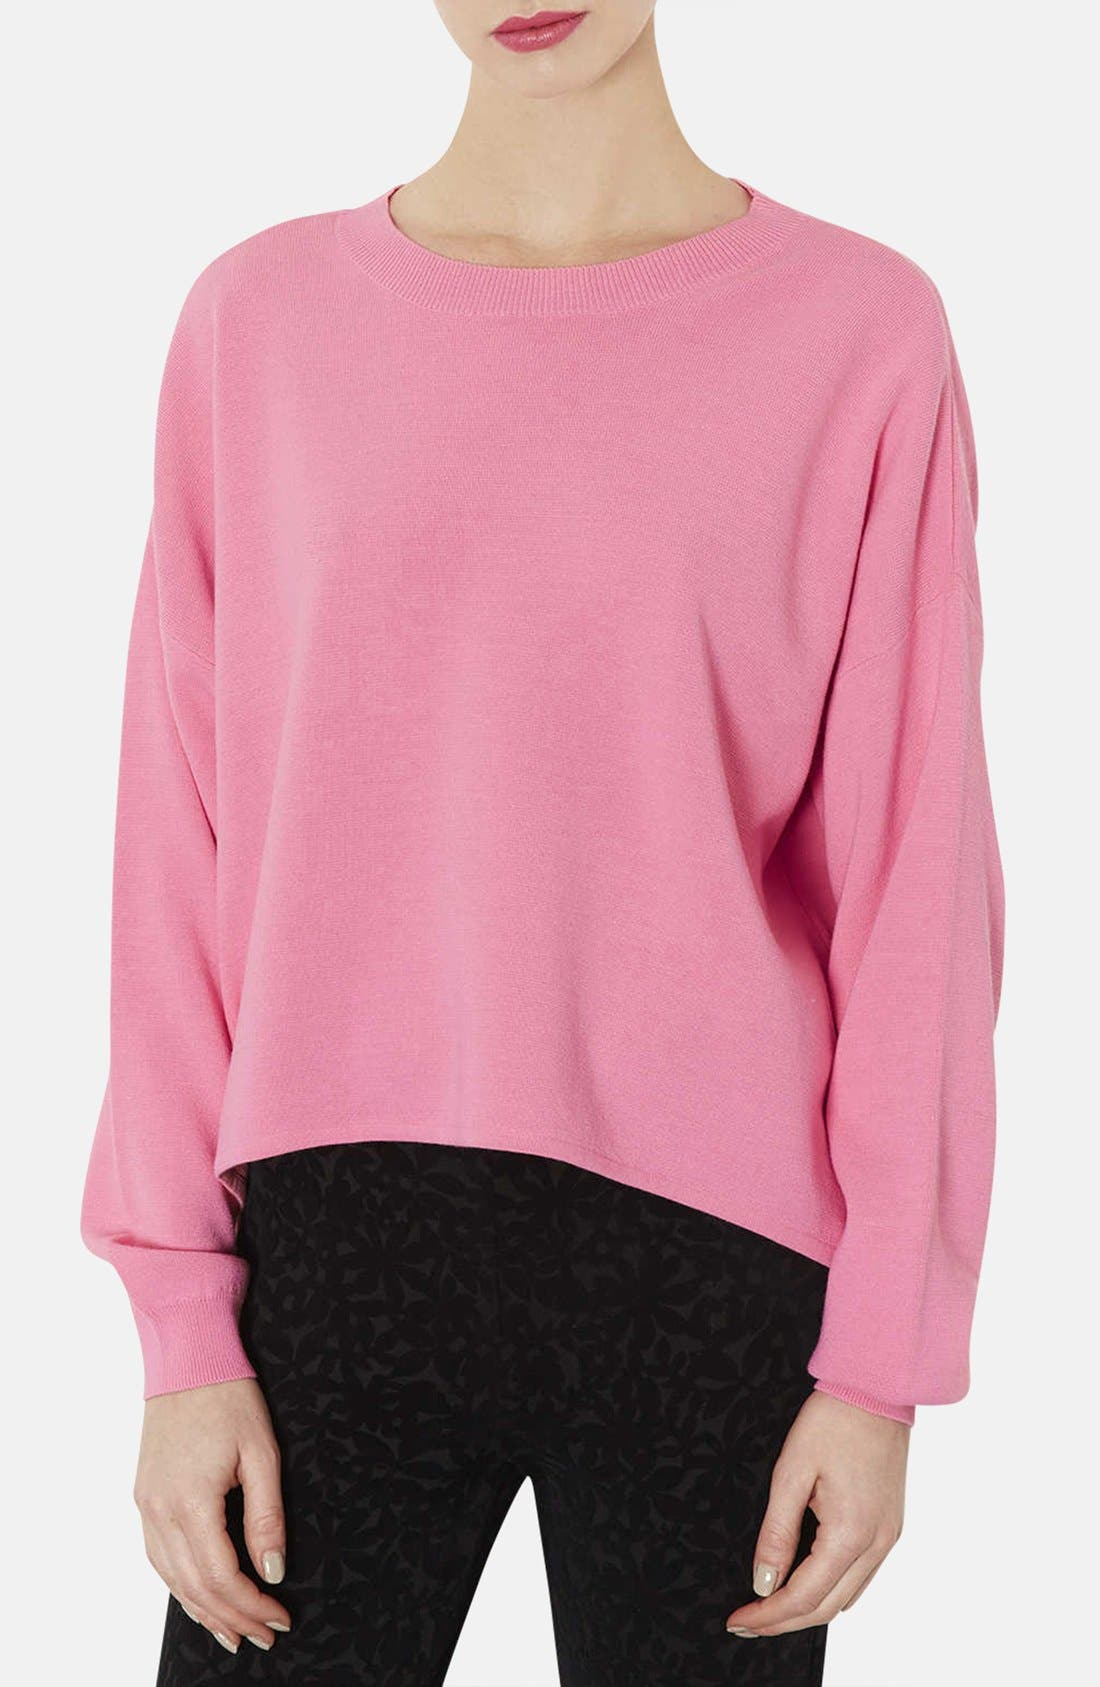 Alternate Image 1 Selected - Topshop High/Low Knit Sweater